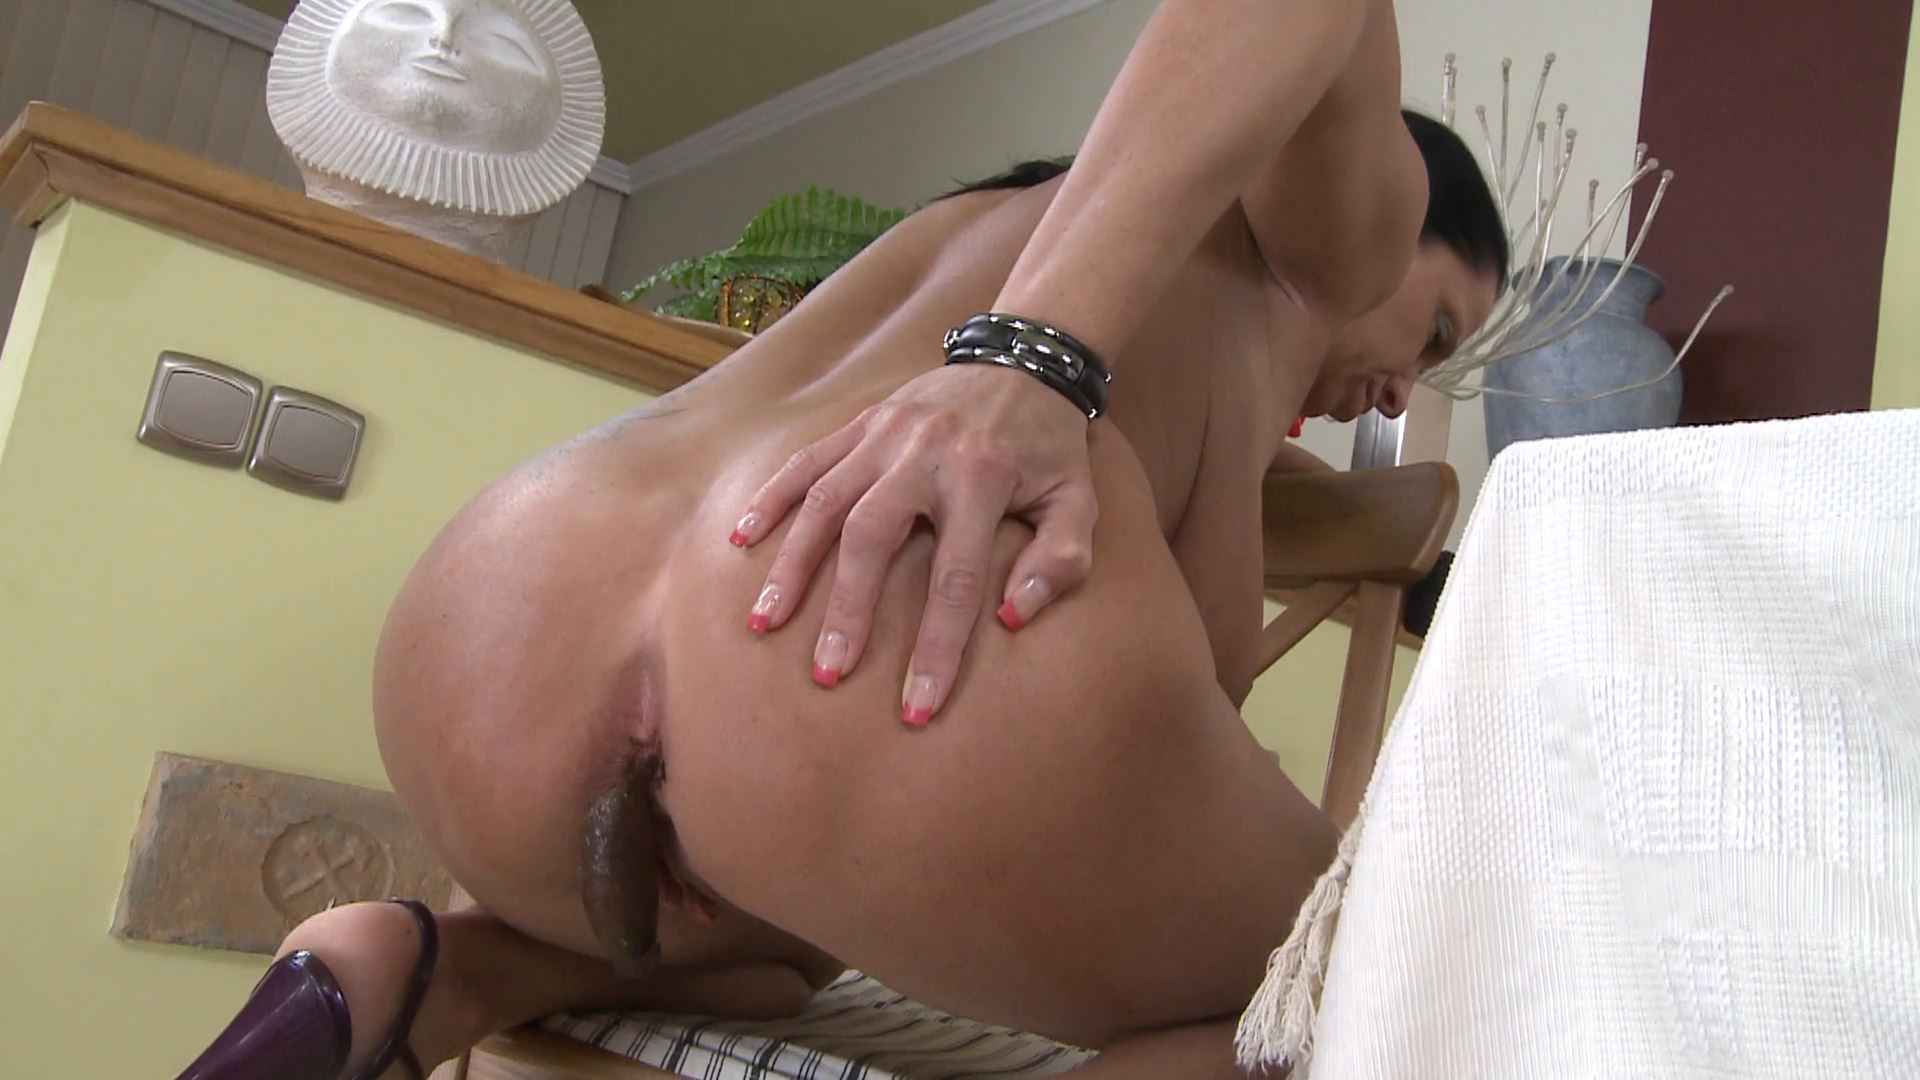 [SOLO SCAT GIRLS / SG-VIDEO] Solo Scat Girls Andy Moore [FULL HD][1080p][MP4]